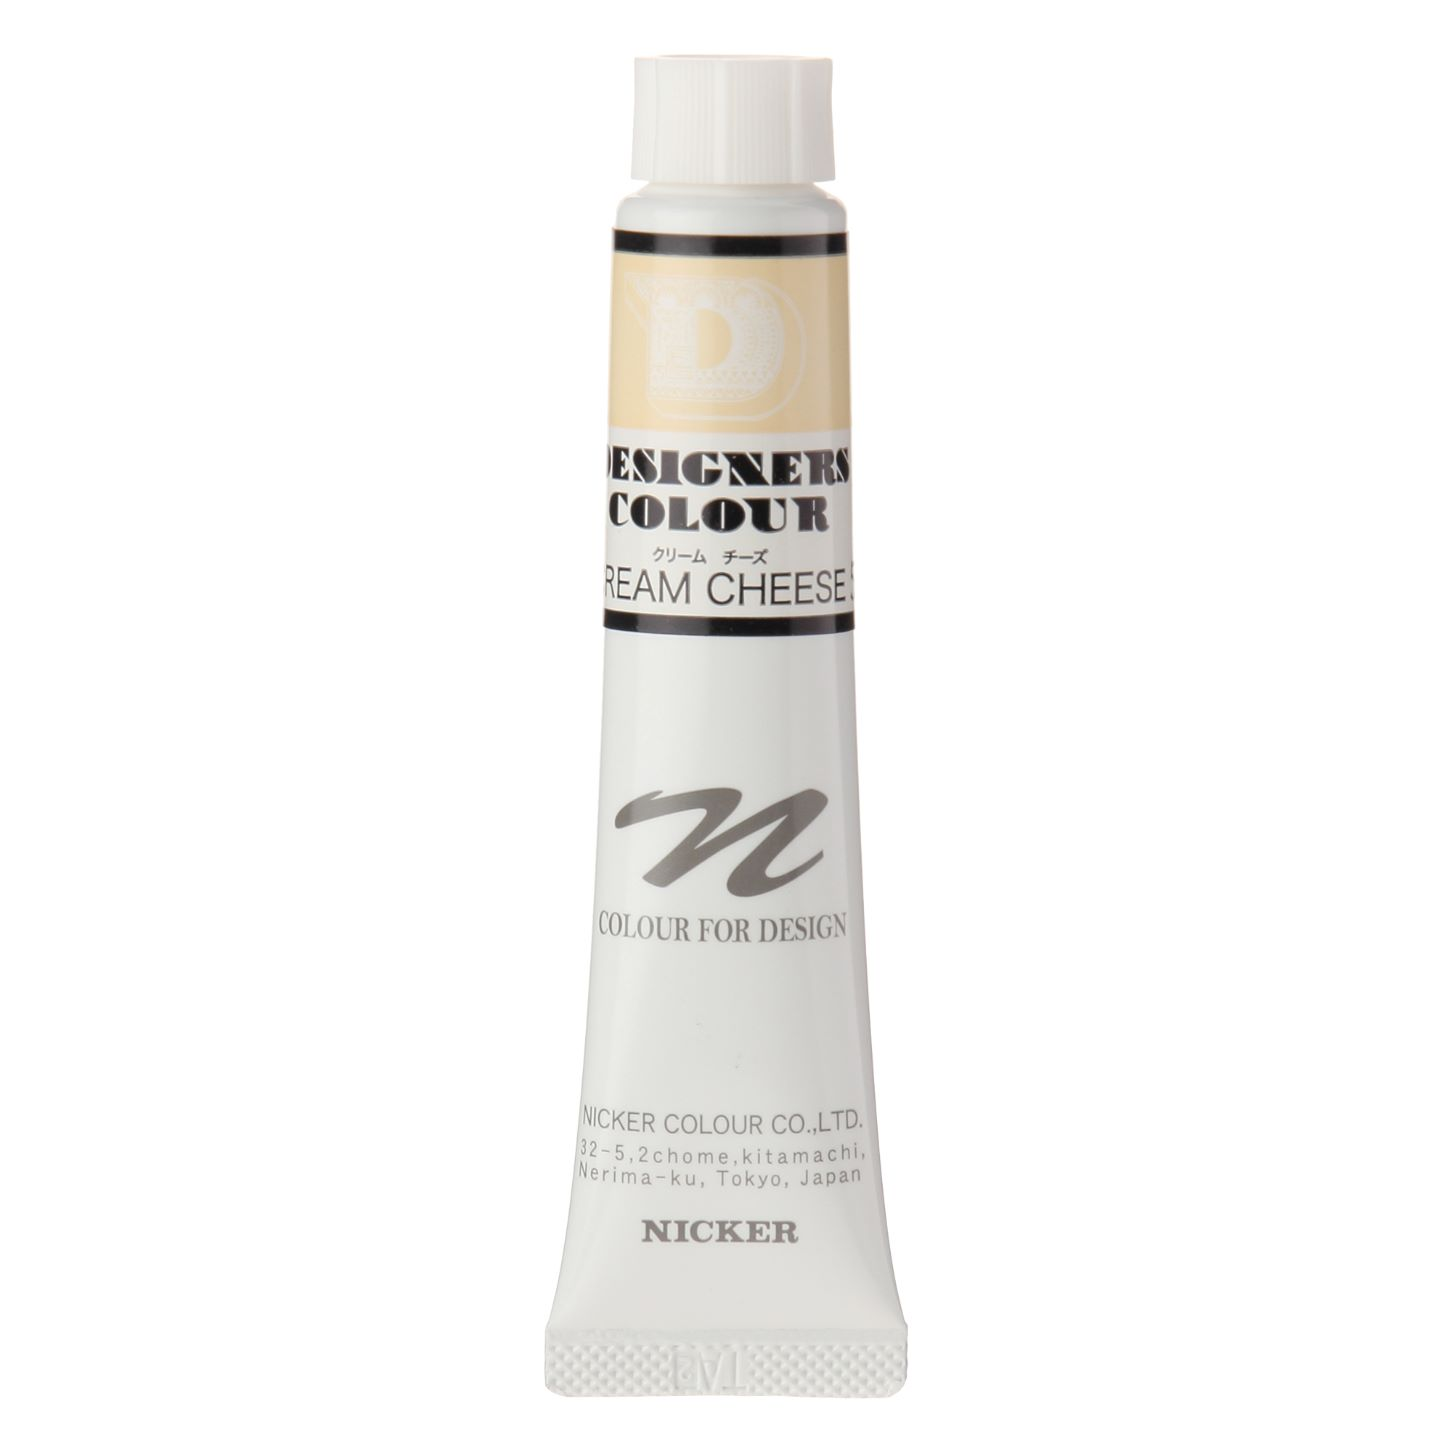 DESIGNERS COLOUR 20ml 565  CREAM CHEESE